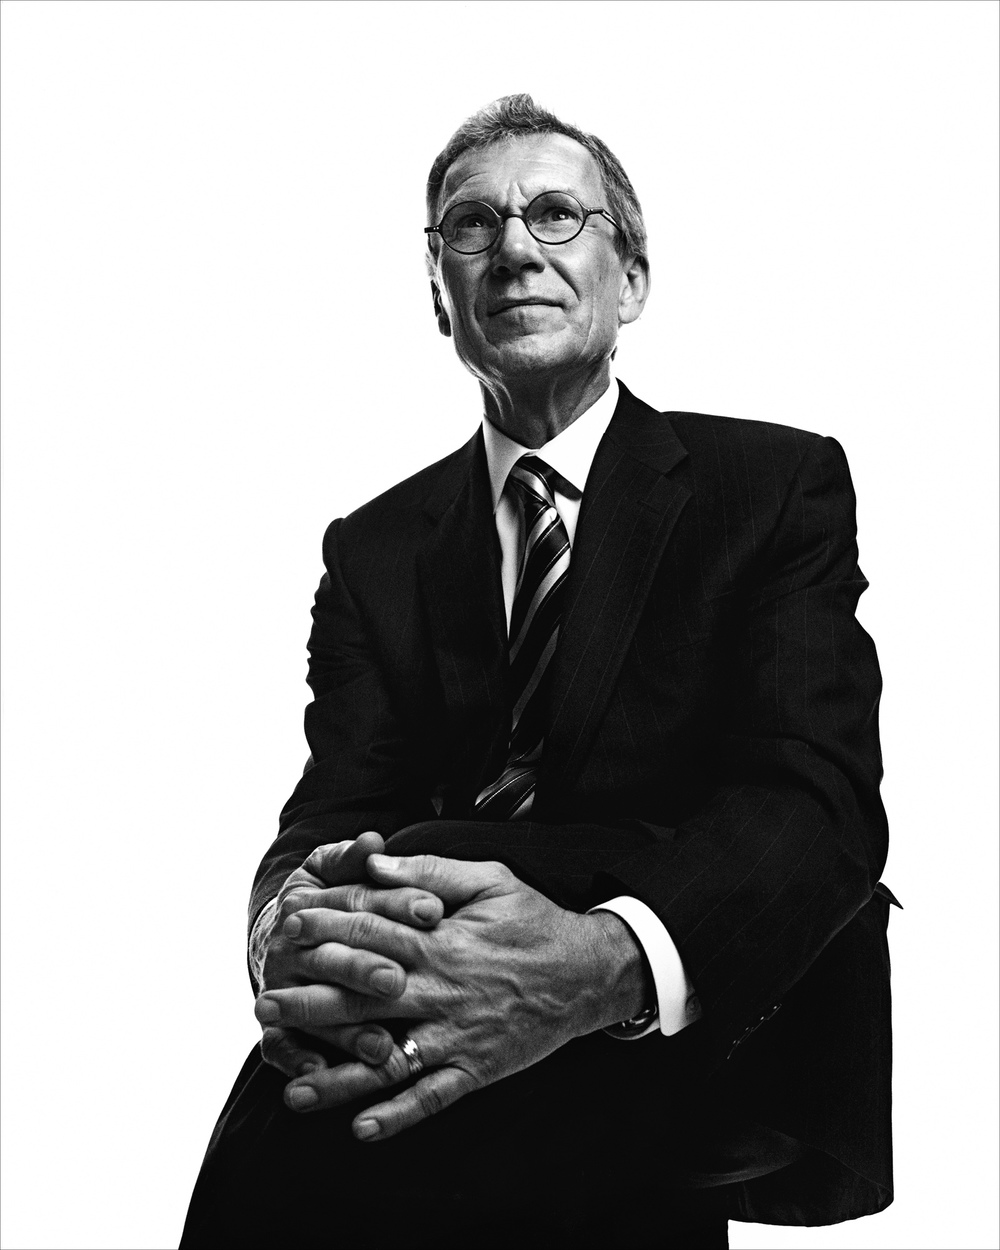 Tom Daschle - Washington, D.C.